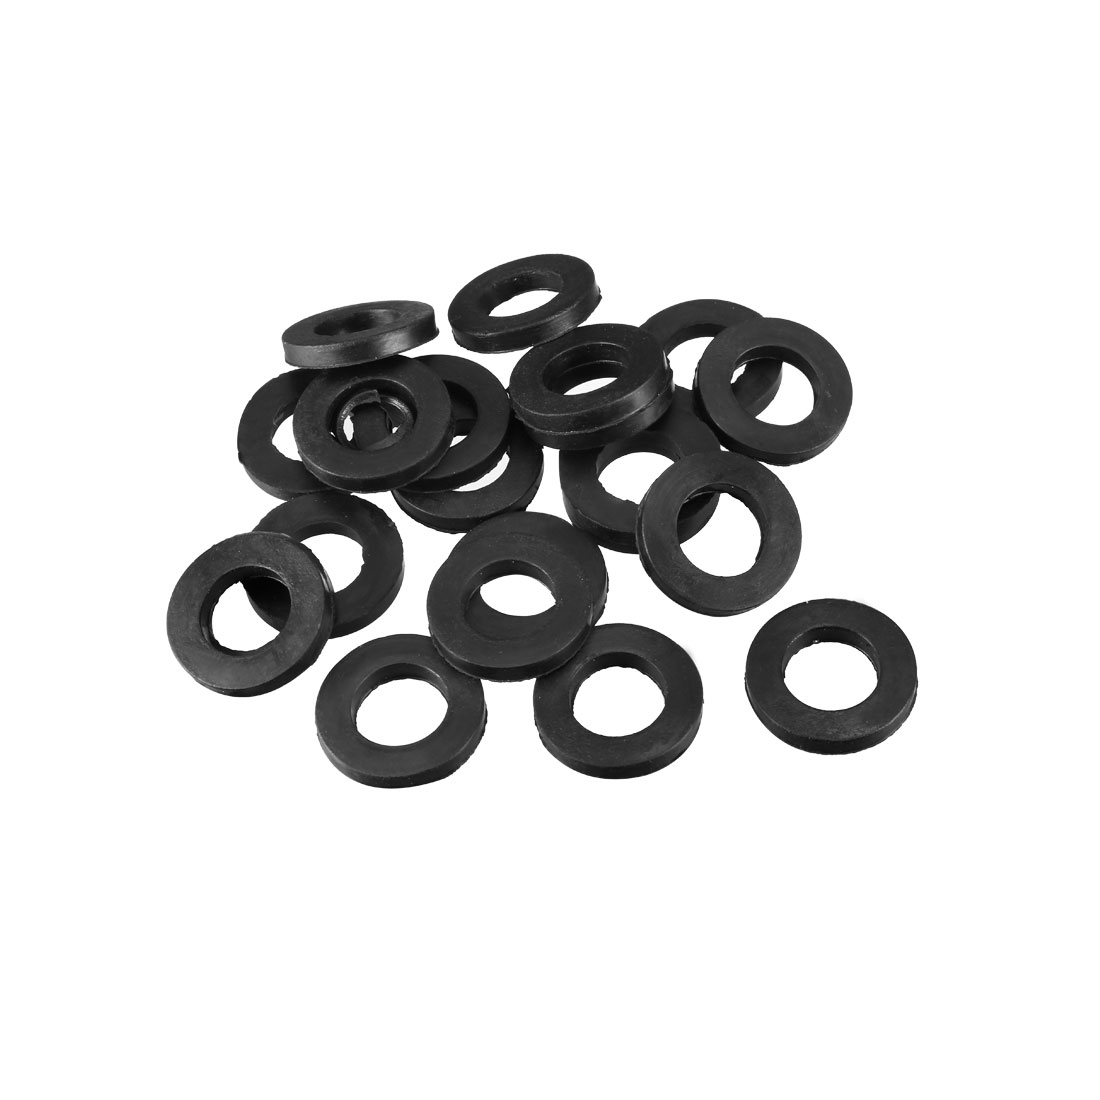 20pcs Rubber Spacer Flat Standoff Washer Insulation Metric M10 x 20mm x 3mm